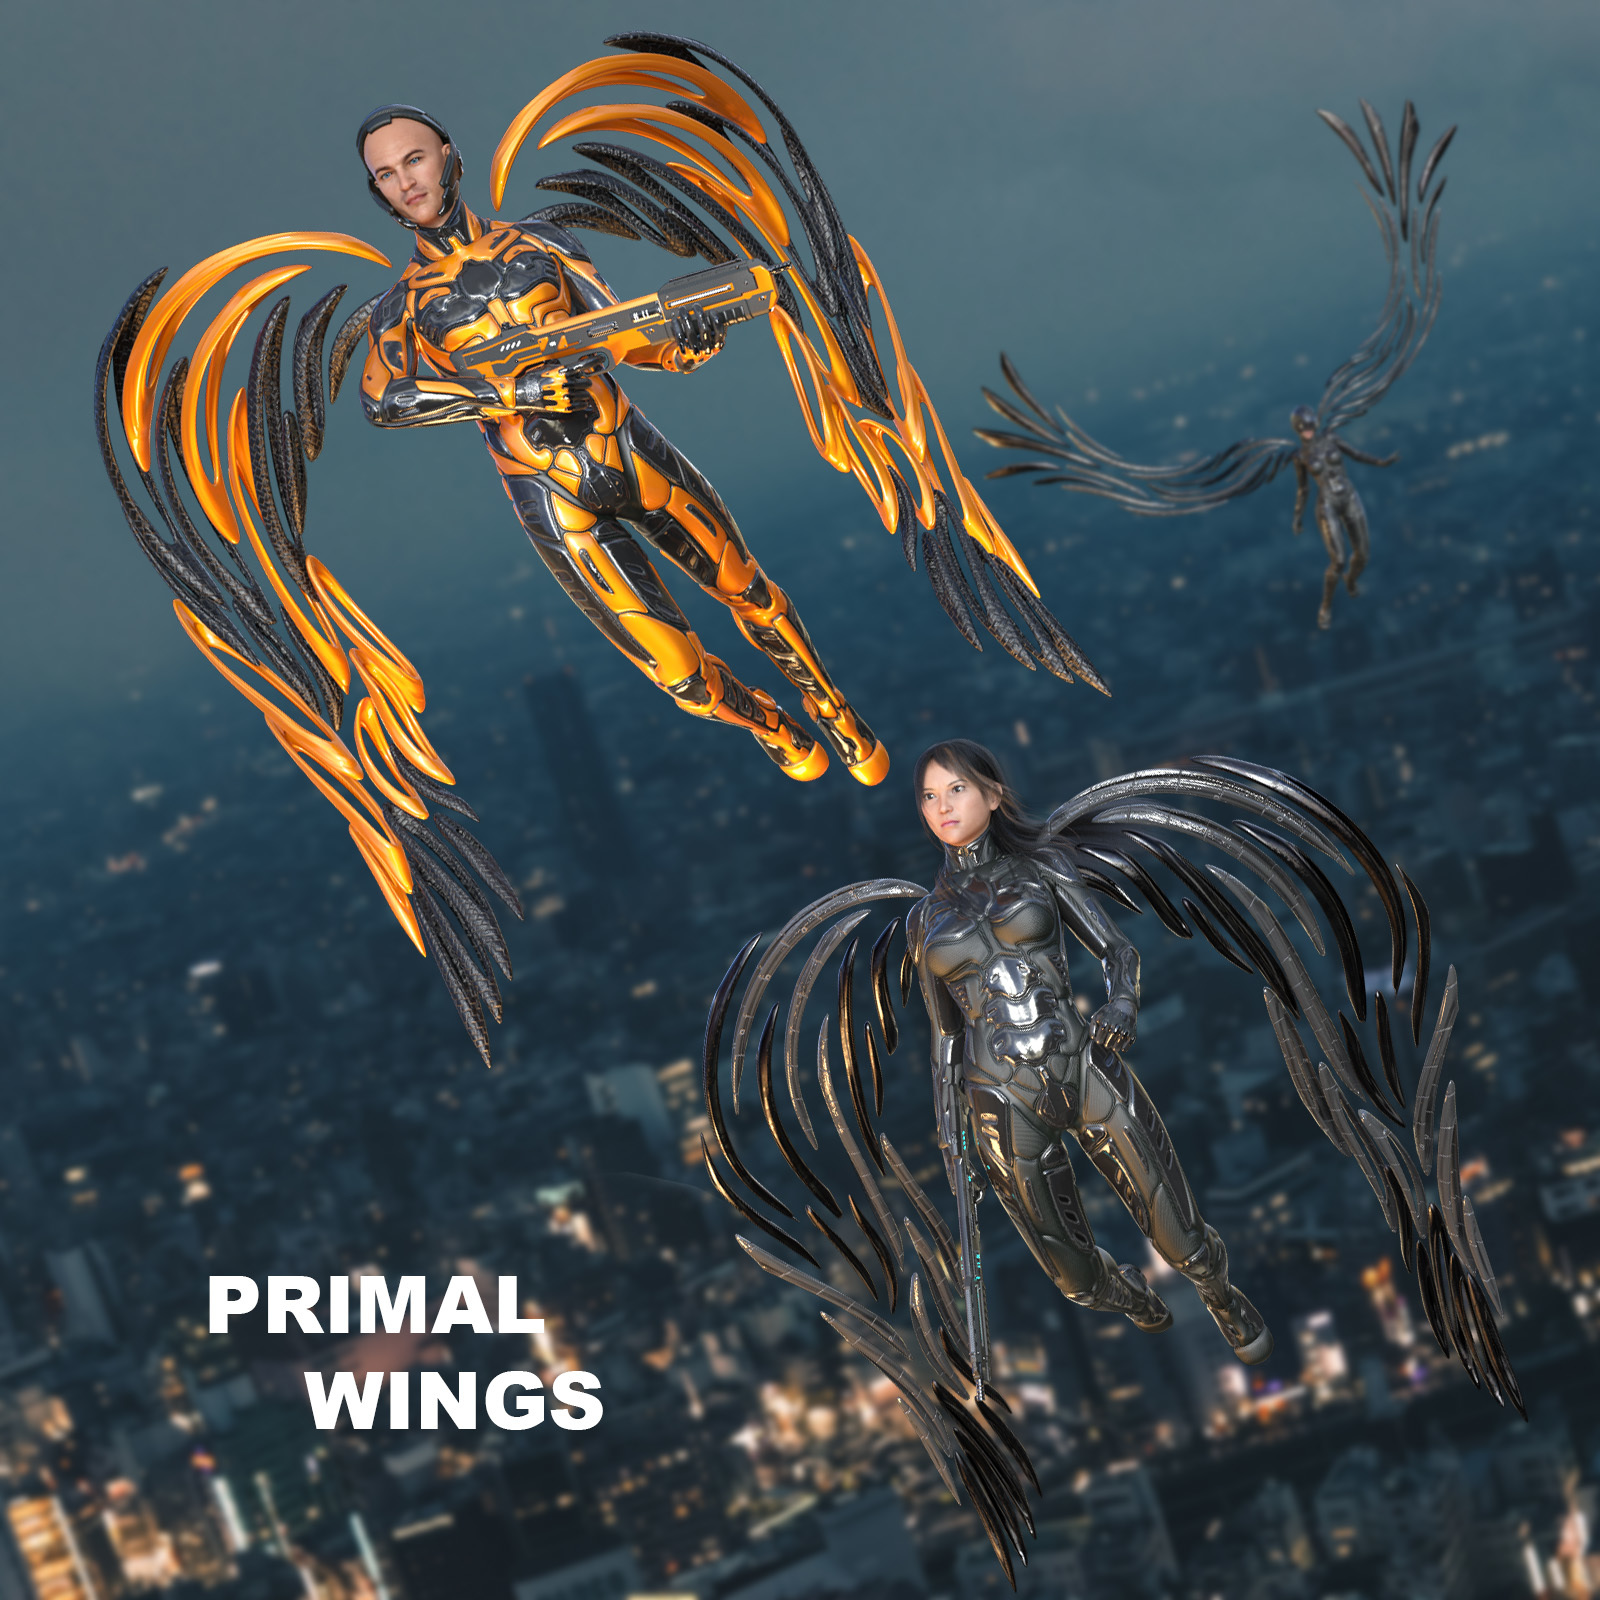 Primal Wings by midnight_stories